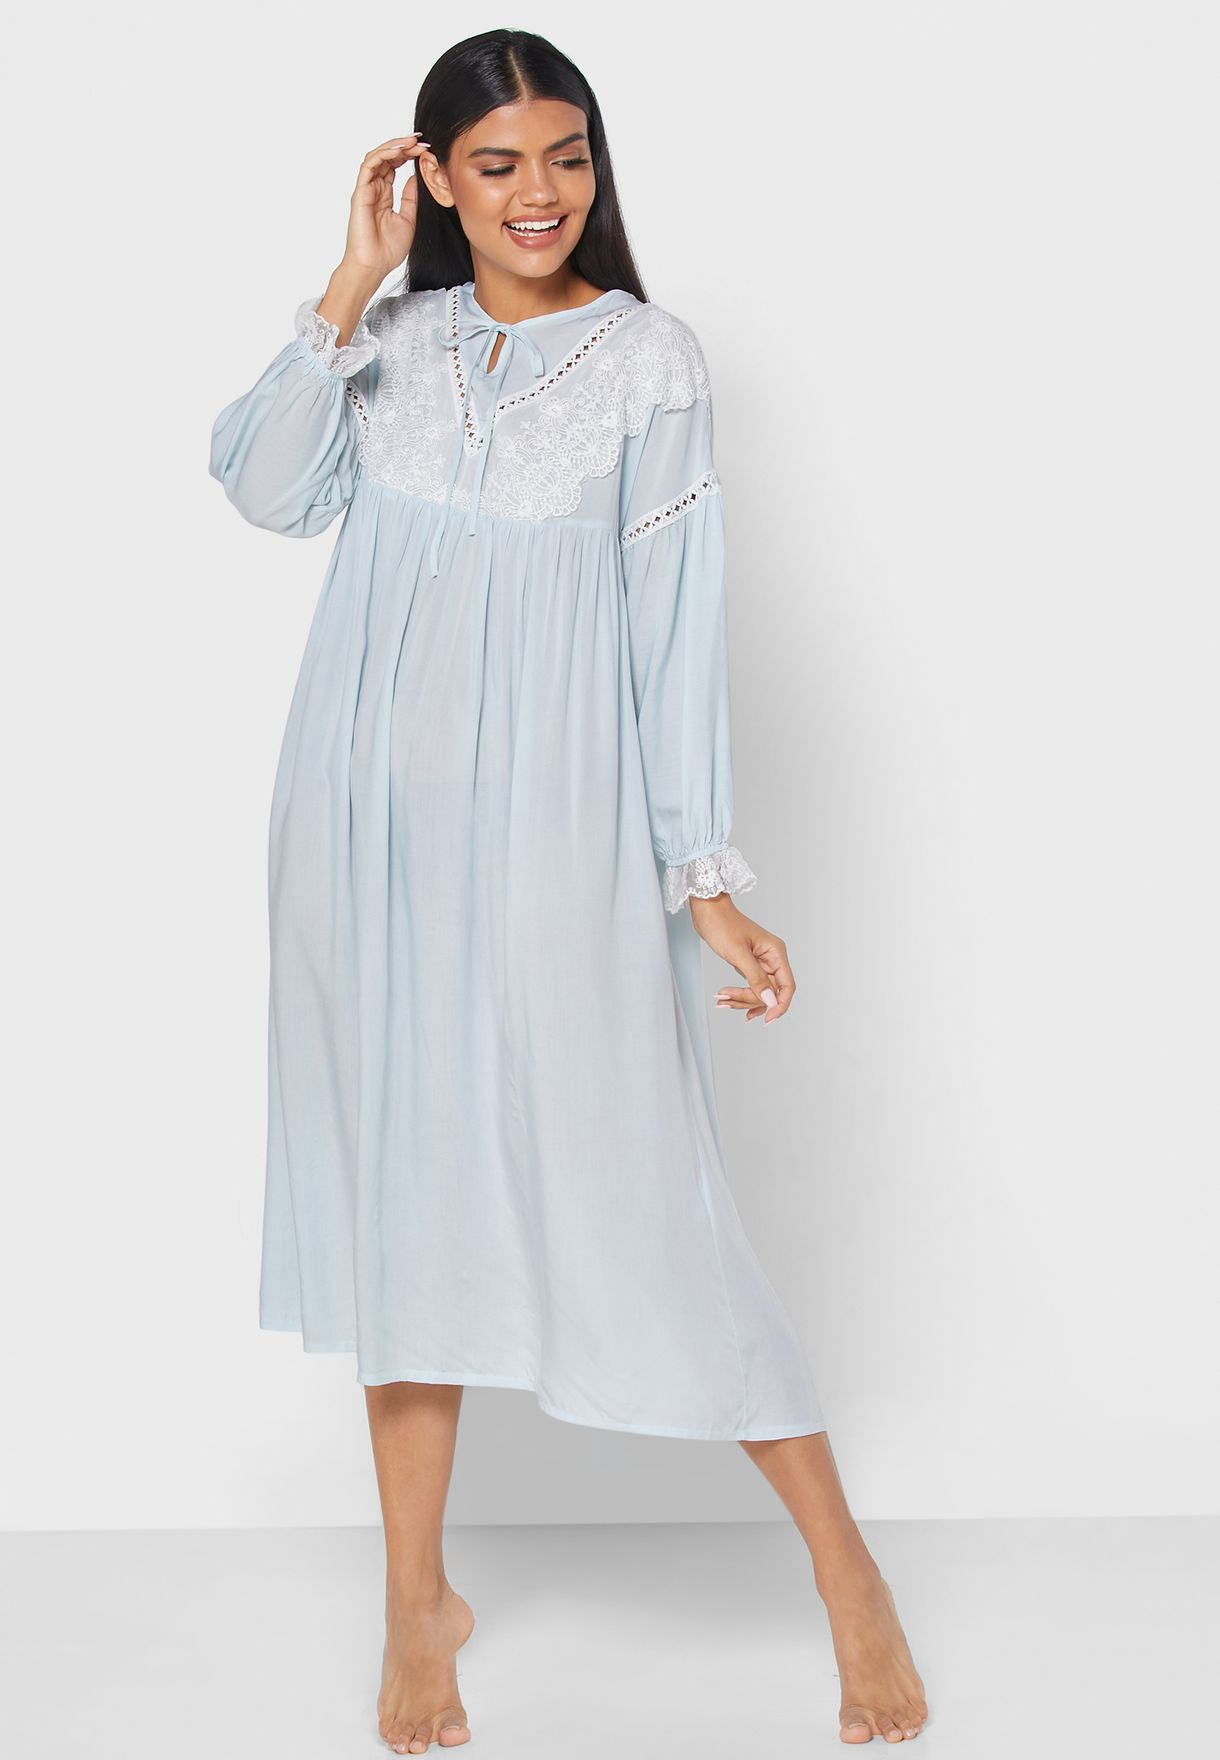 Lace Insert Nightdress